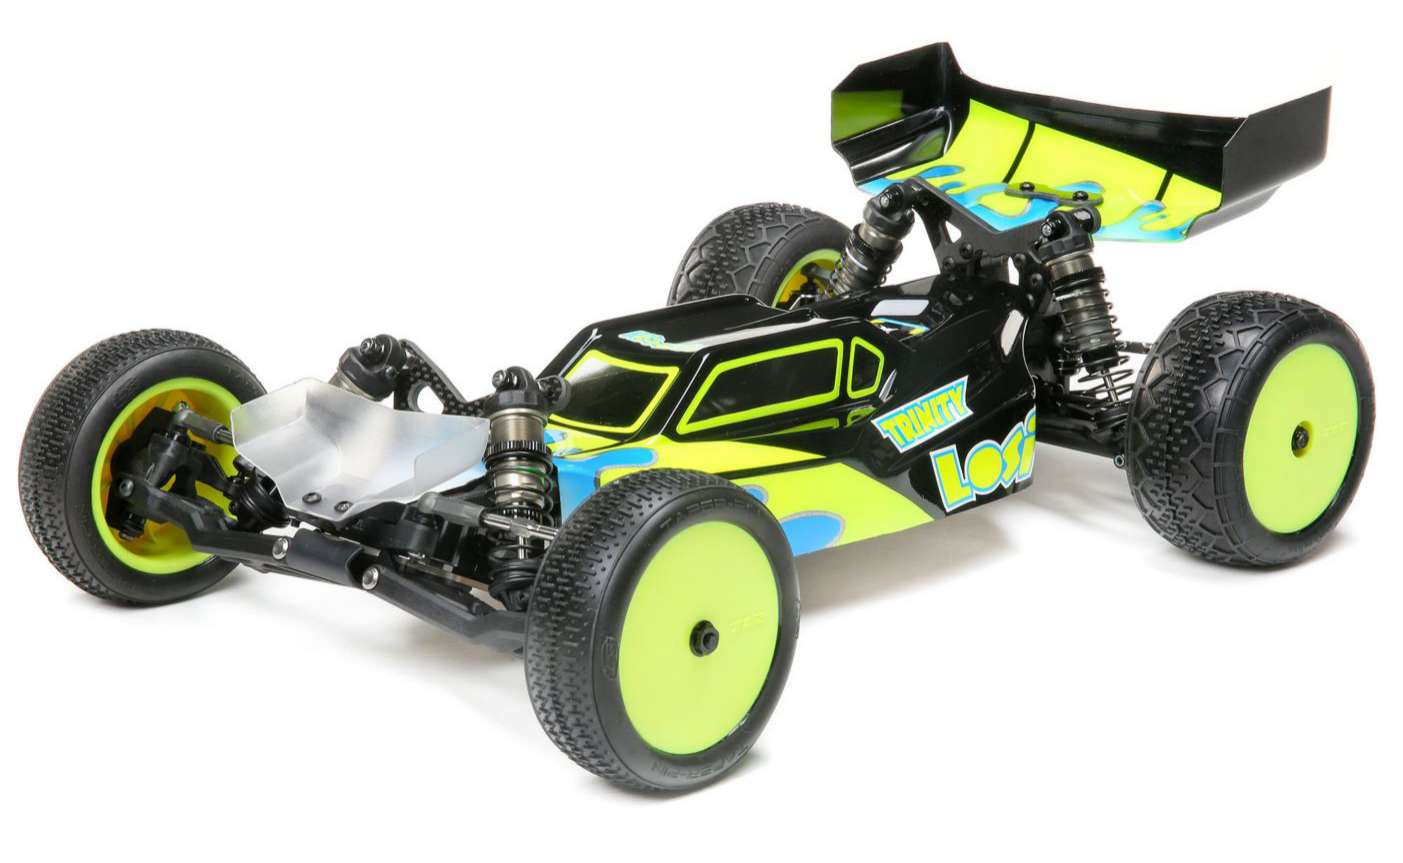 TLR 1/10 22 5.0 2WD DC ELITE Race Kit, Dirt/Clay REVIEW